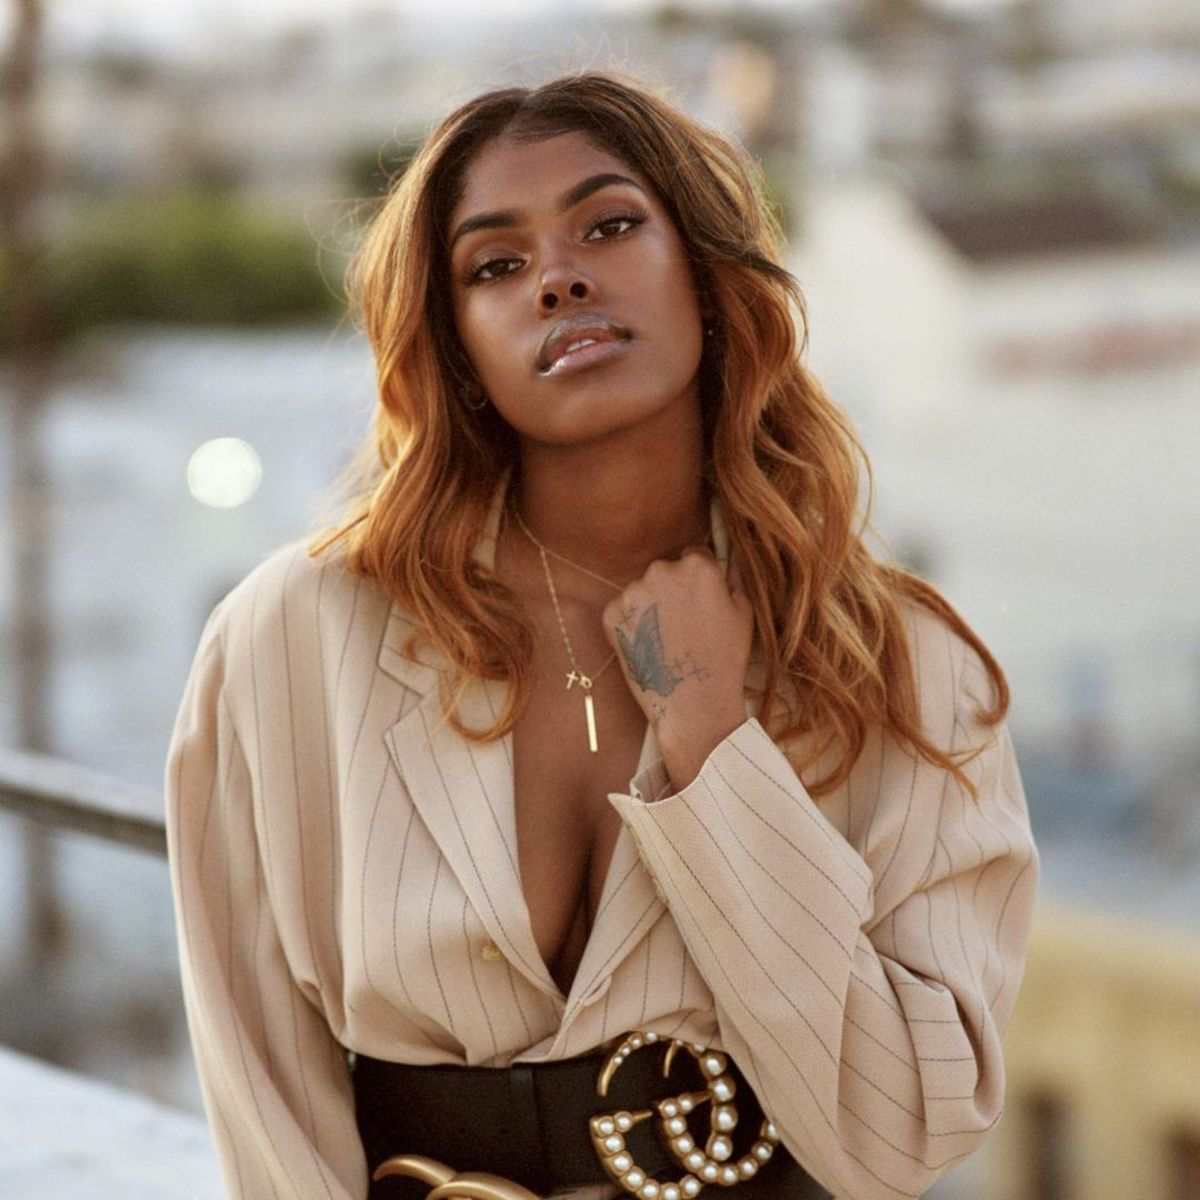 Diamond White biography American singer, actress, and voice actress